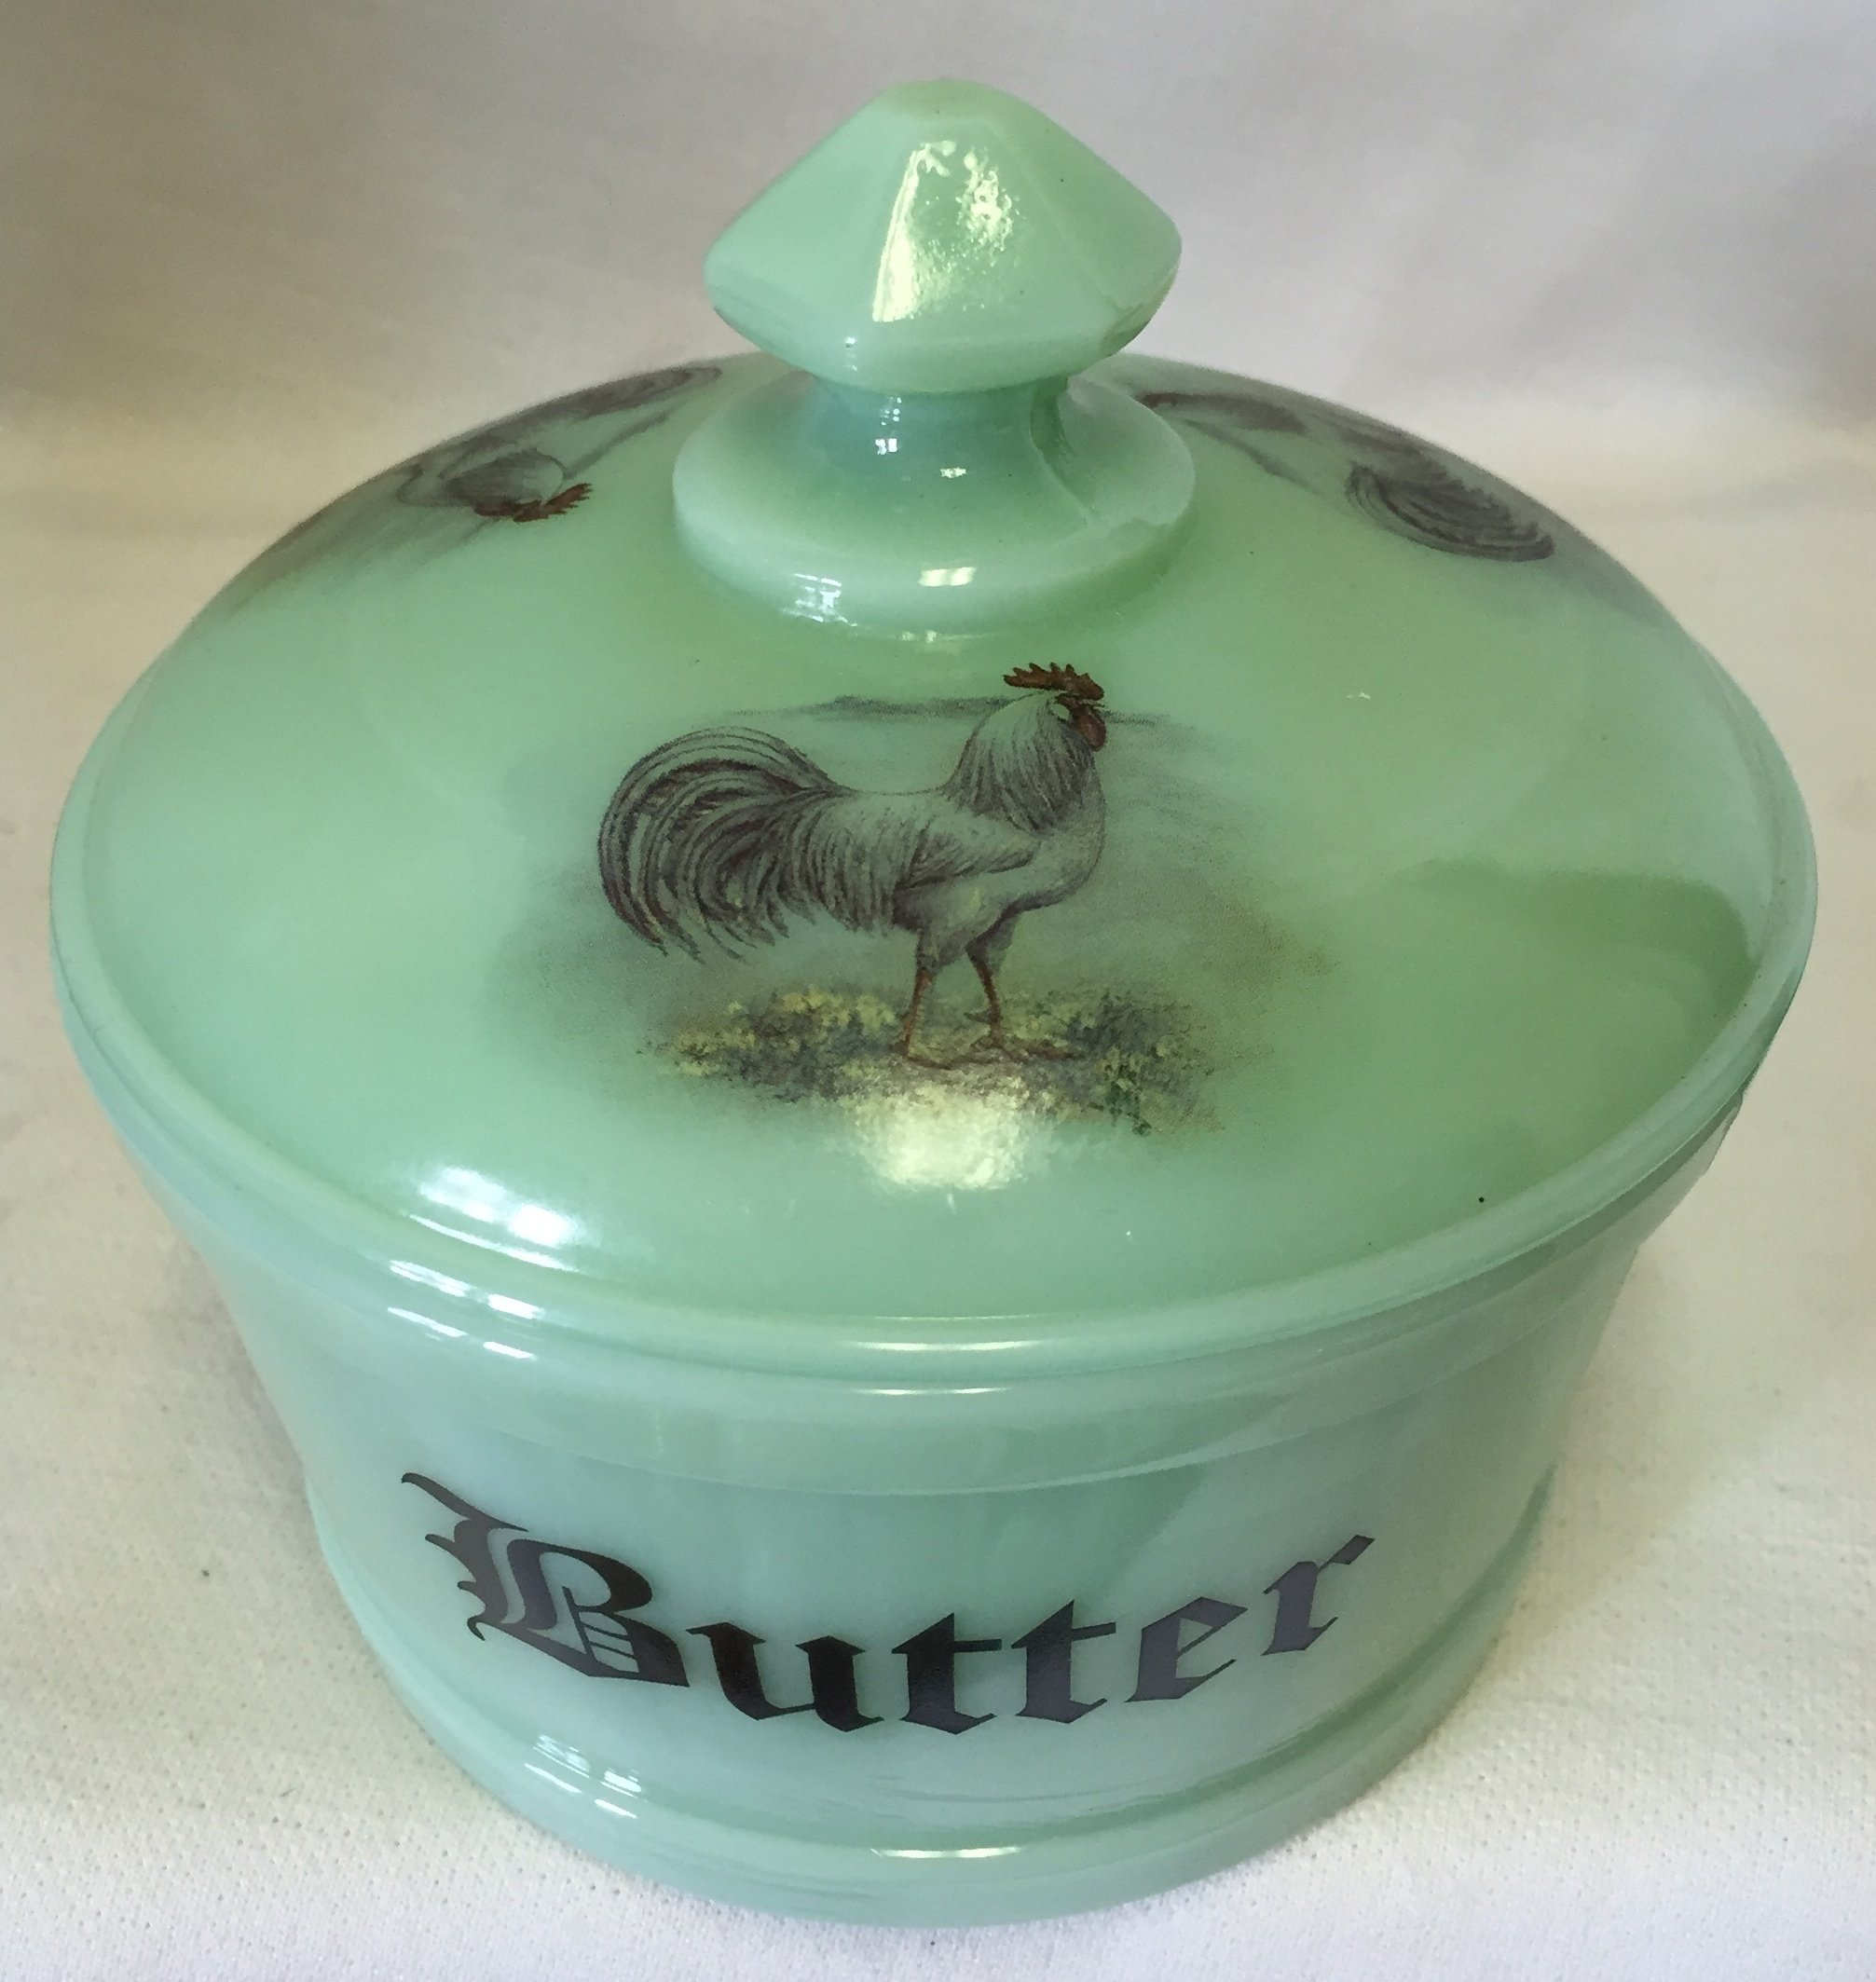 Butterdish / Butter Tub - ''Butter'' w/ White Leghorn Rooster Chicken - Jade Jadeite Jadite Green Glass - American Made